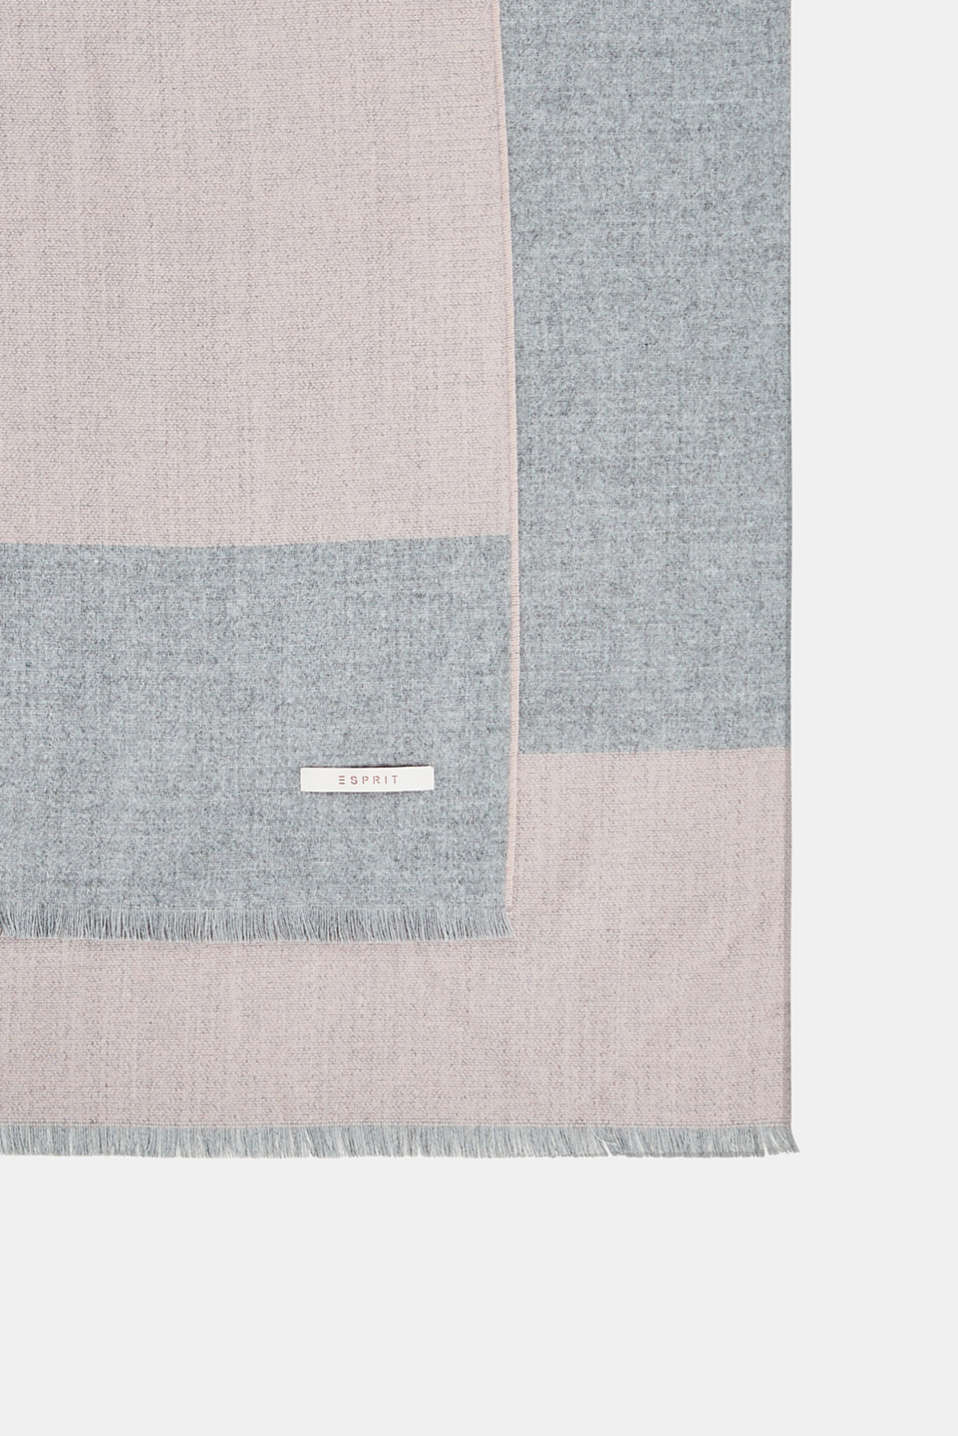 Esprit - Elegant throw with contrasting stripes